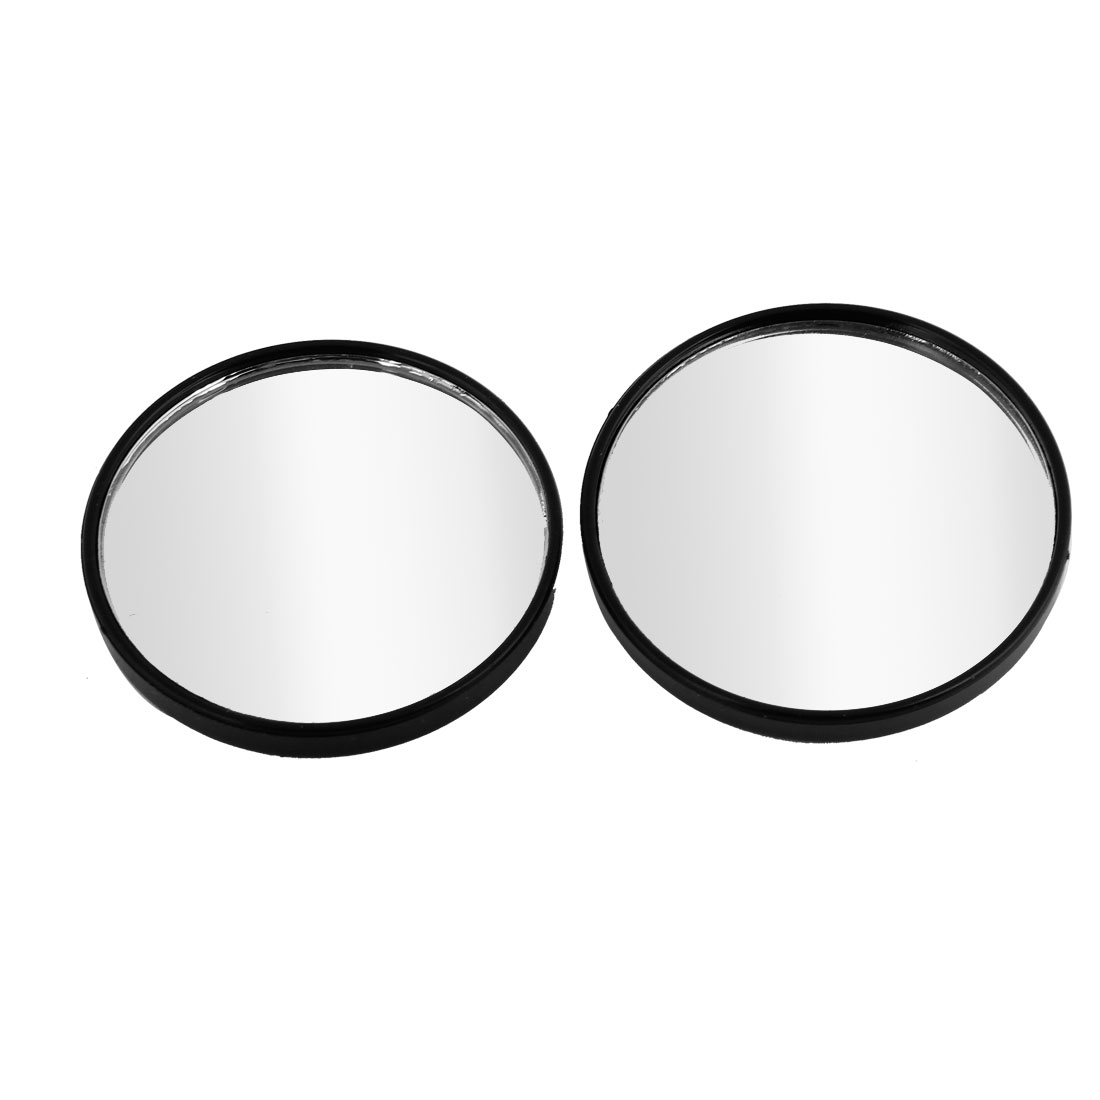 2 Pcs 52mm Car Adjustable Wide Angle Round Convex Rear View Blind Spot Mirror